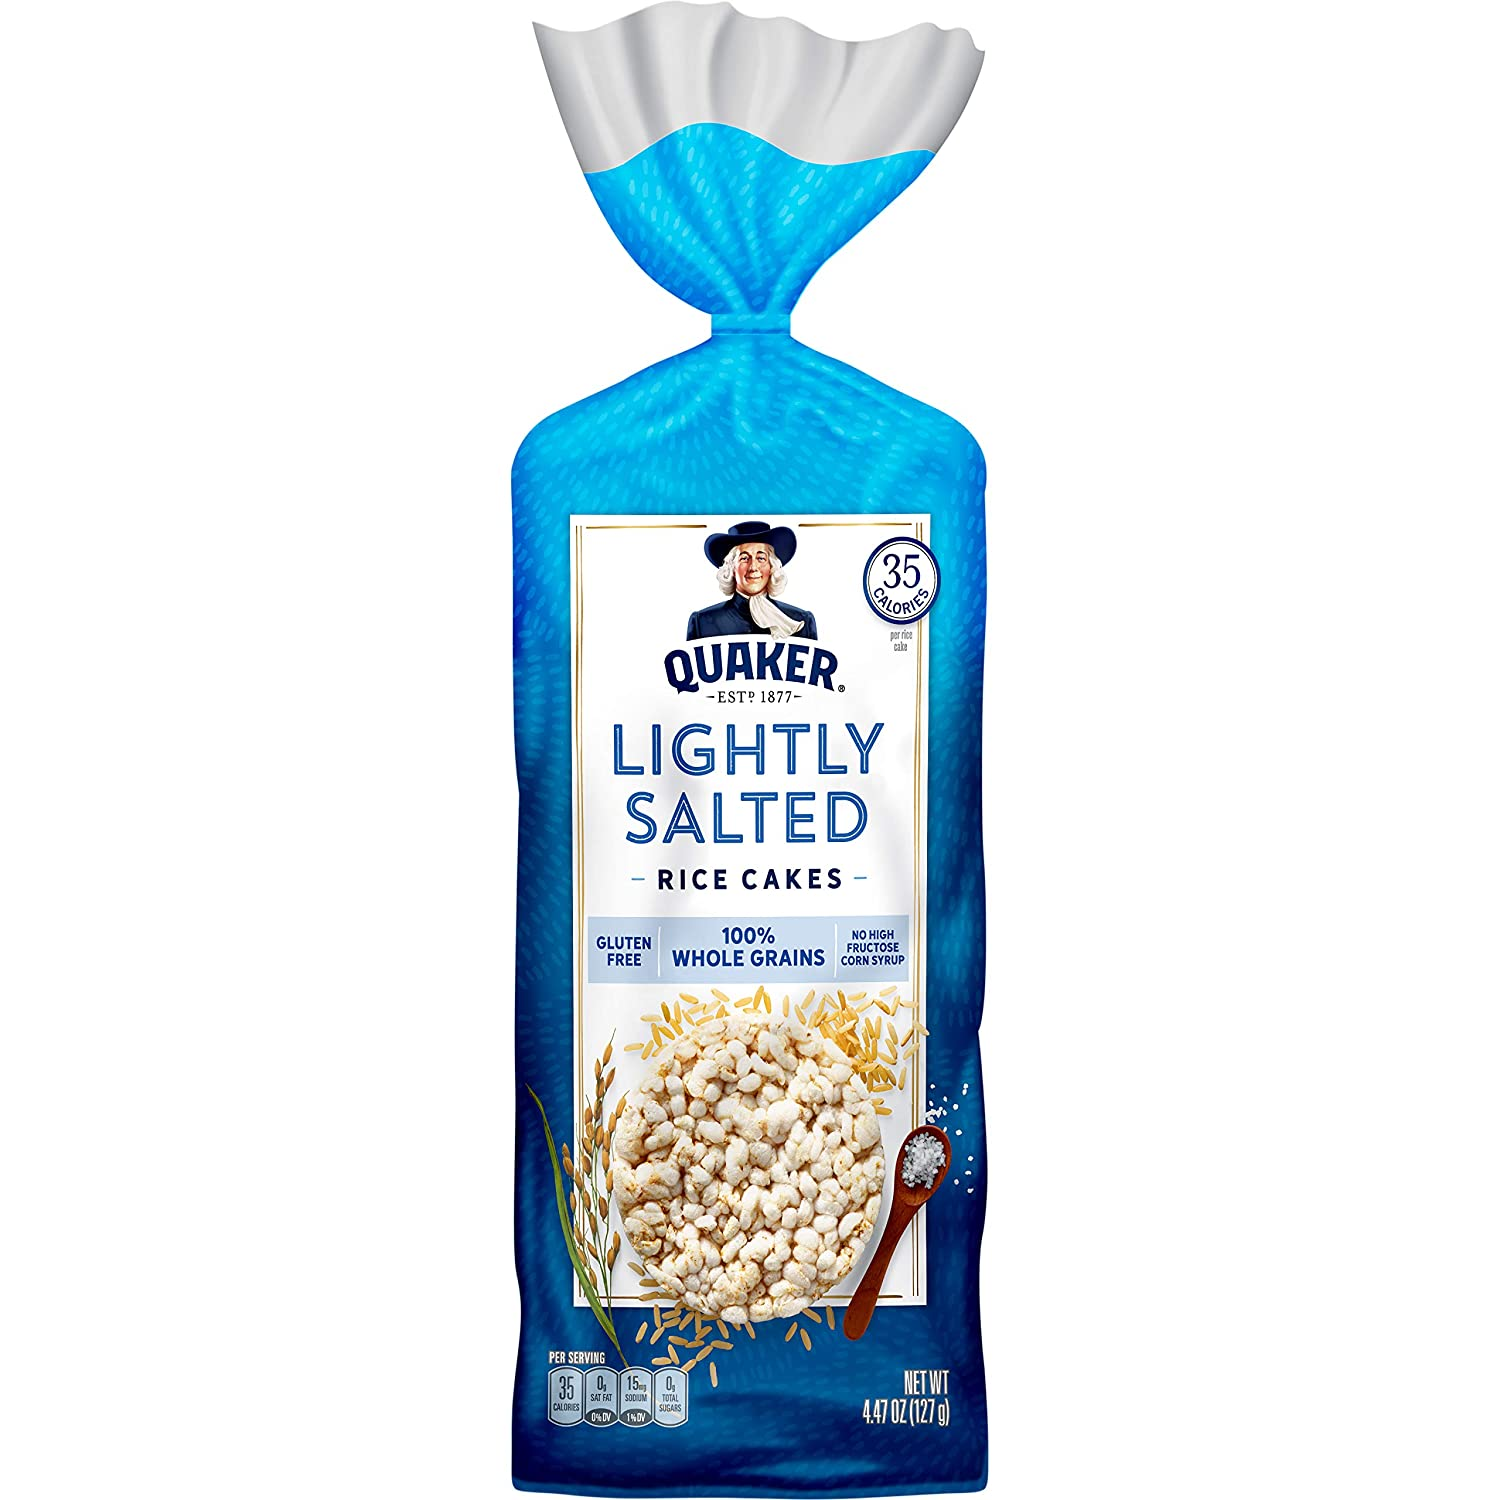 Quaker Rice Cakes, Lightly Salted, 4.47 Ounce